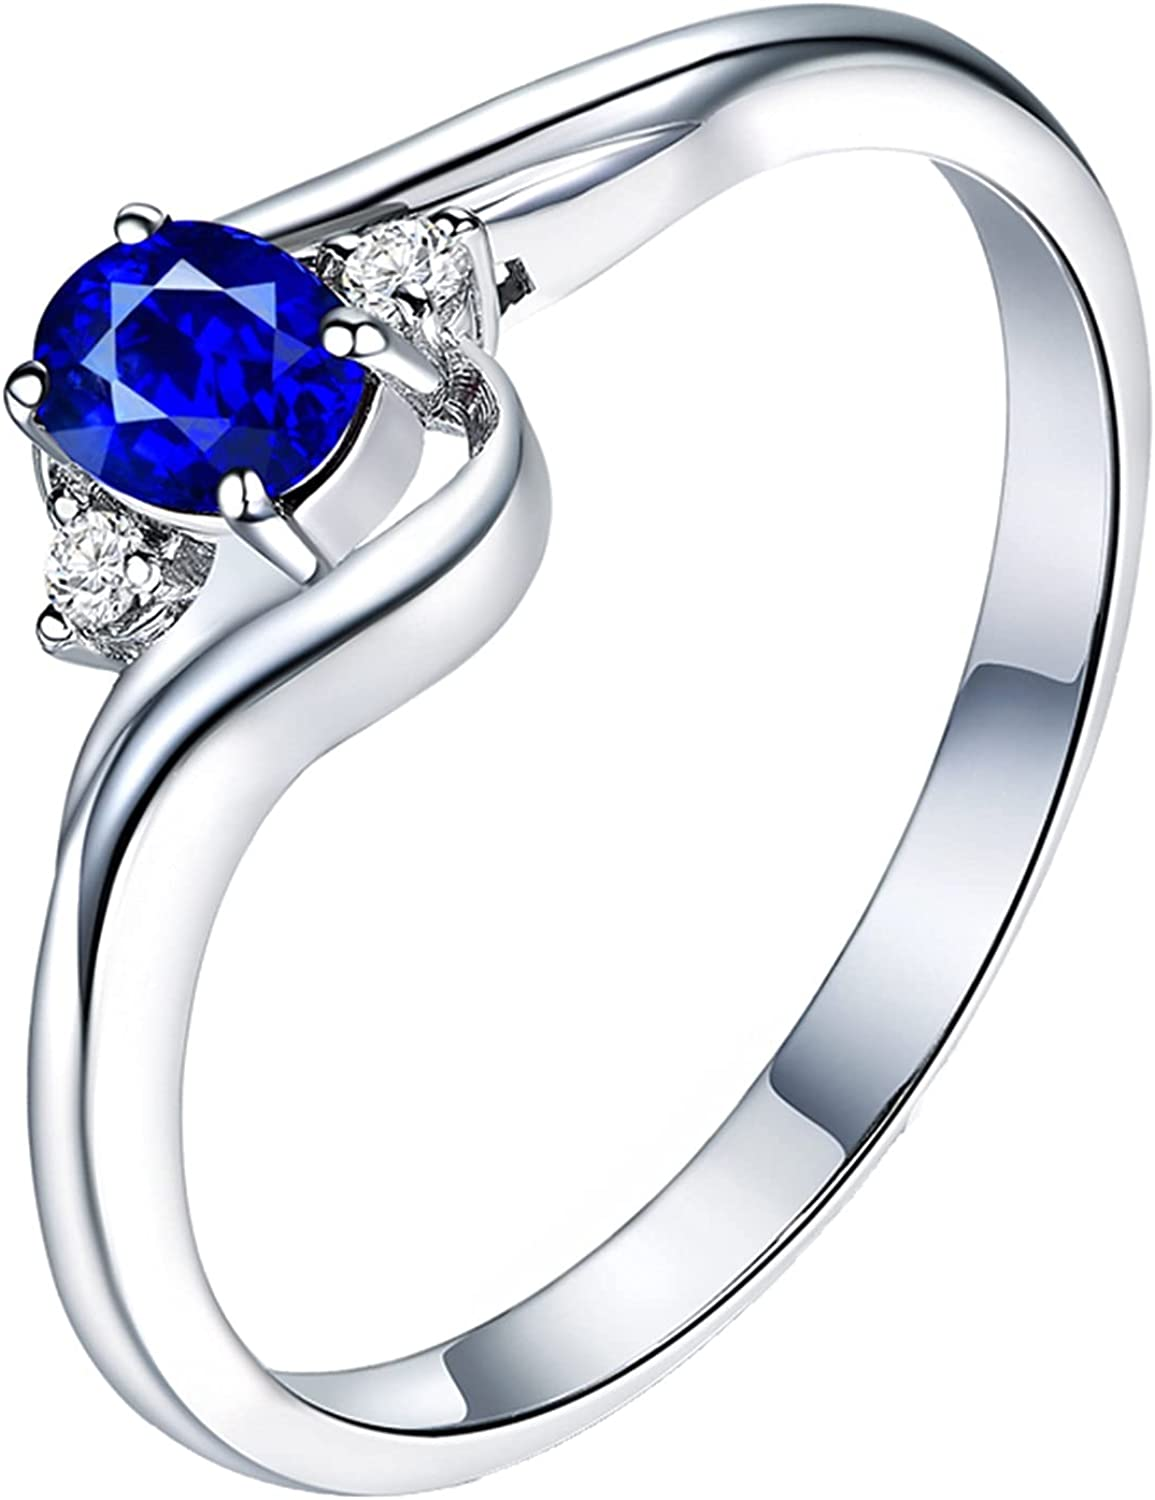 Epinki Women 18K White Gold Ring 0.3ct Max 87% OFF Sapphire with Detroit Mall Blue Oval W